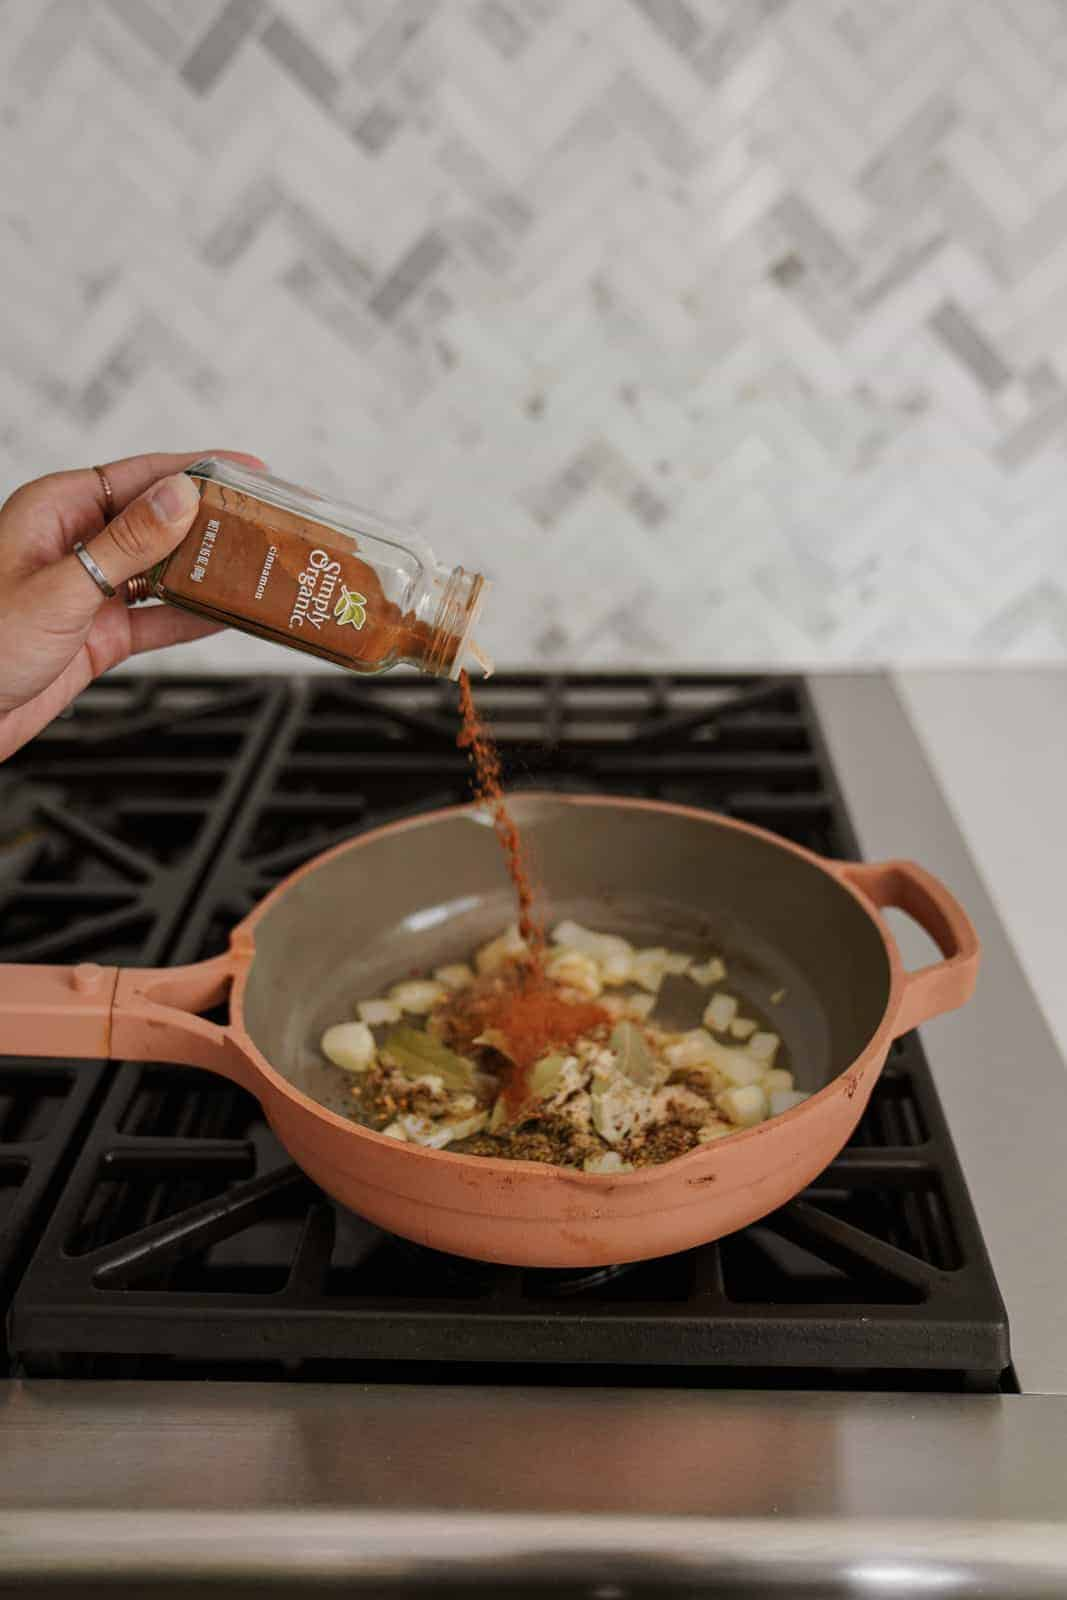 Adding spices into a pan on the stove